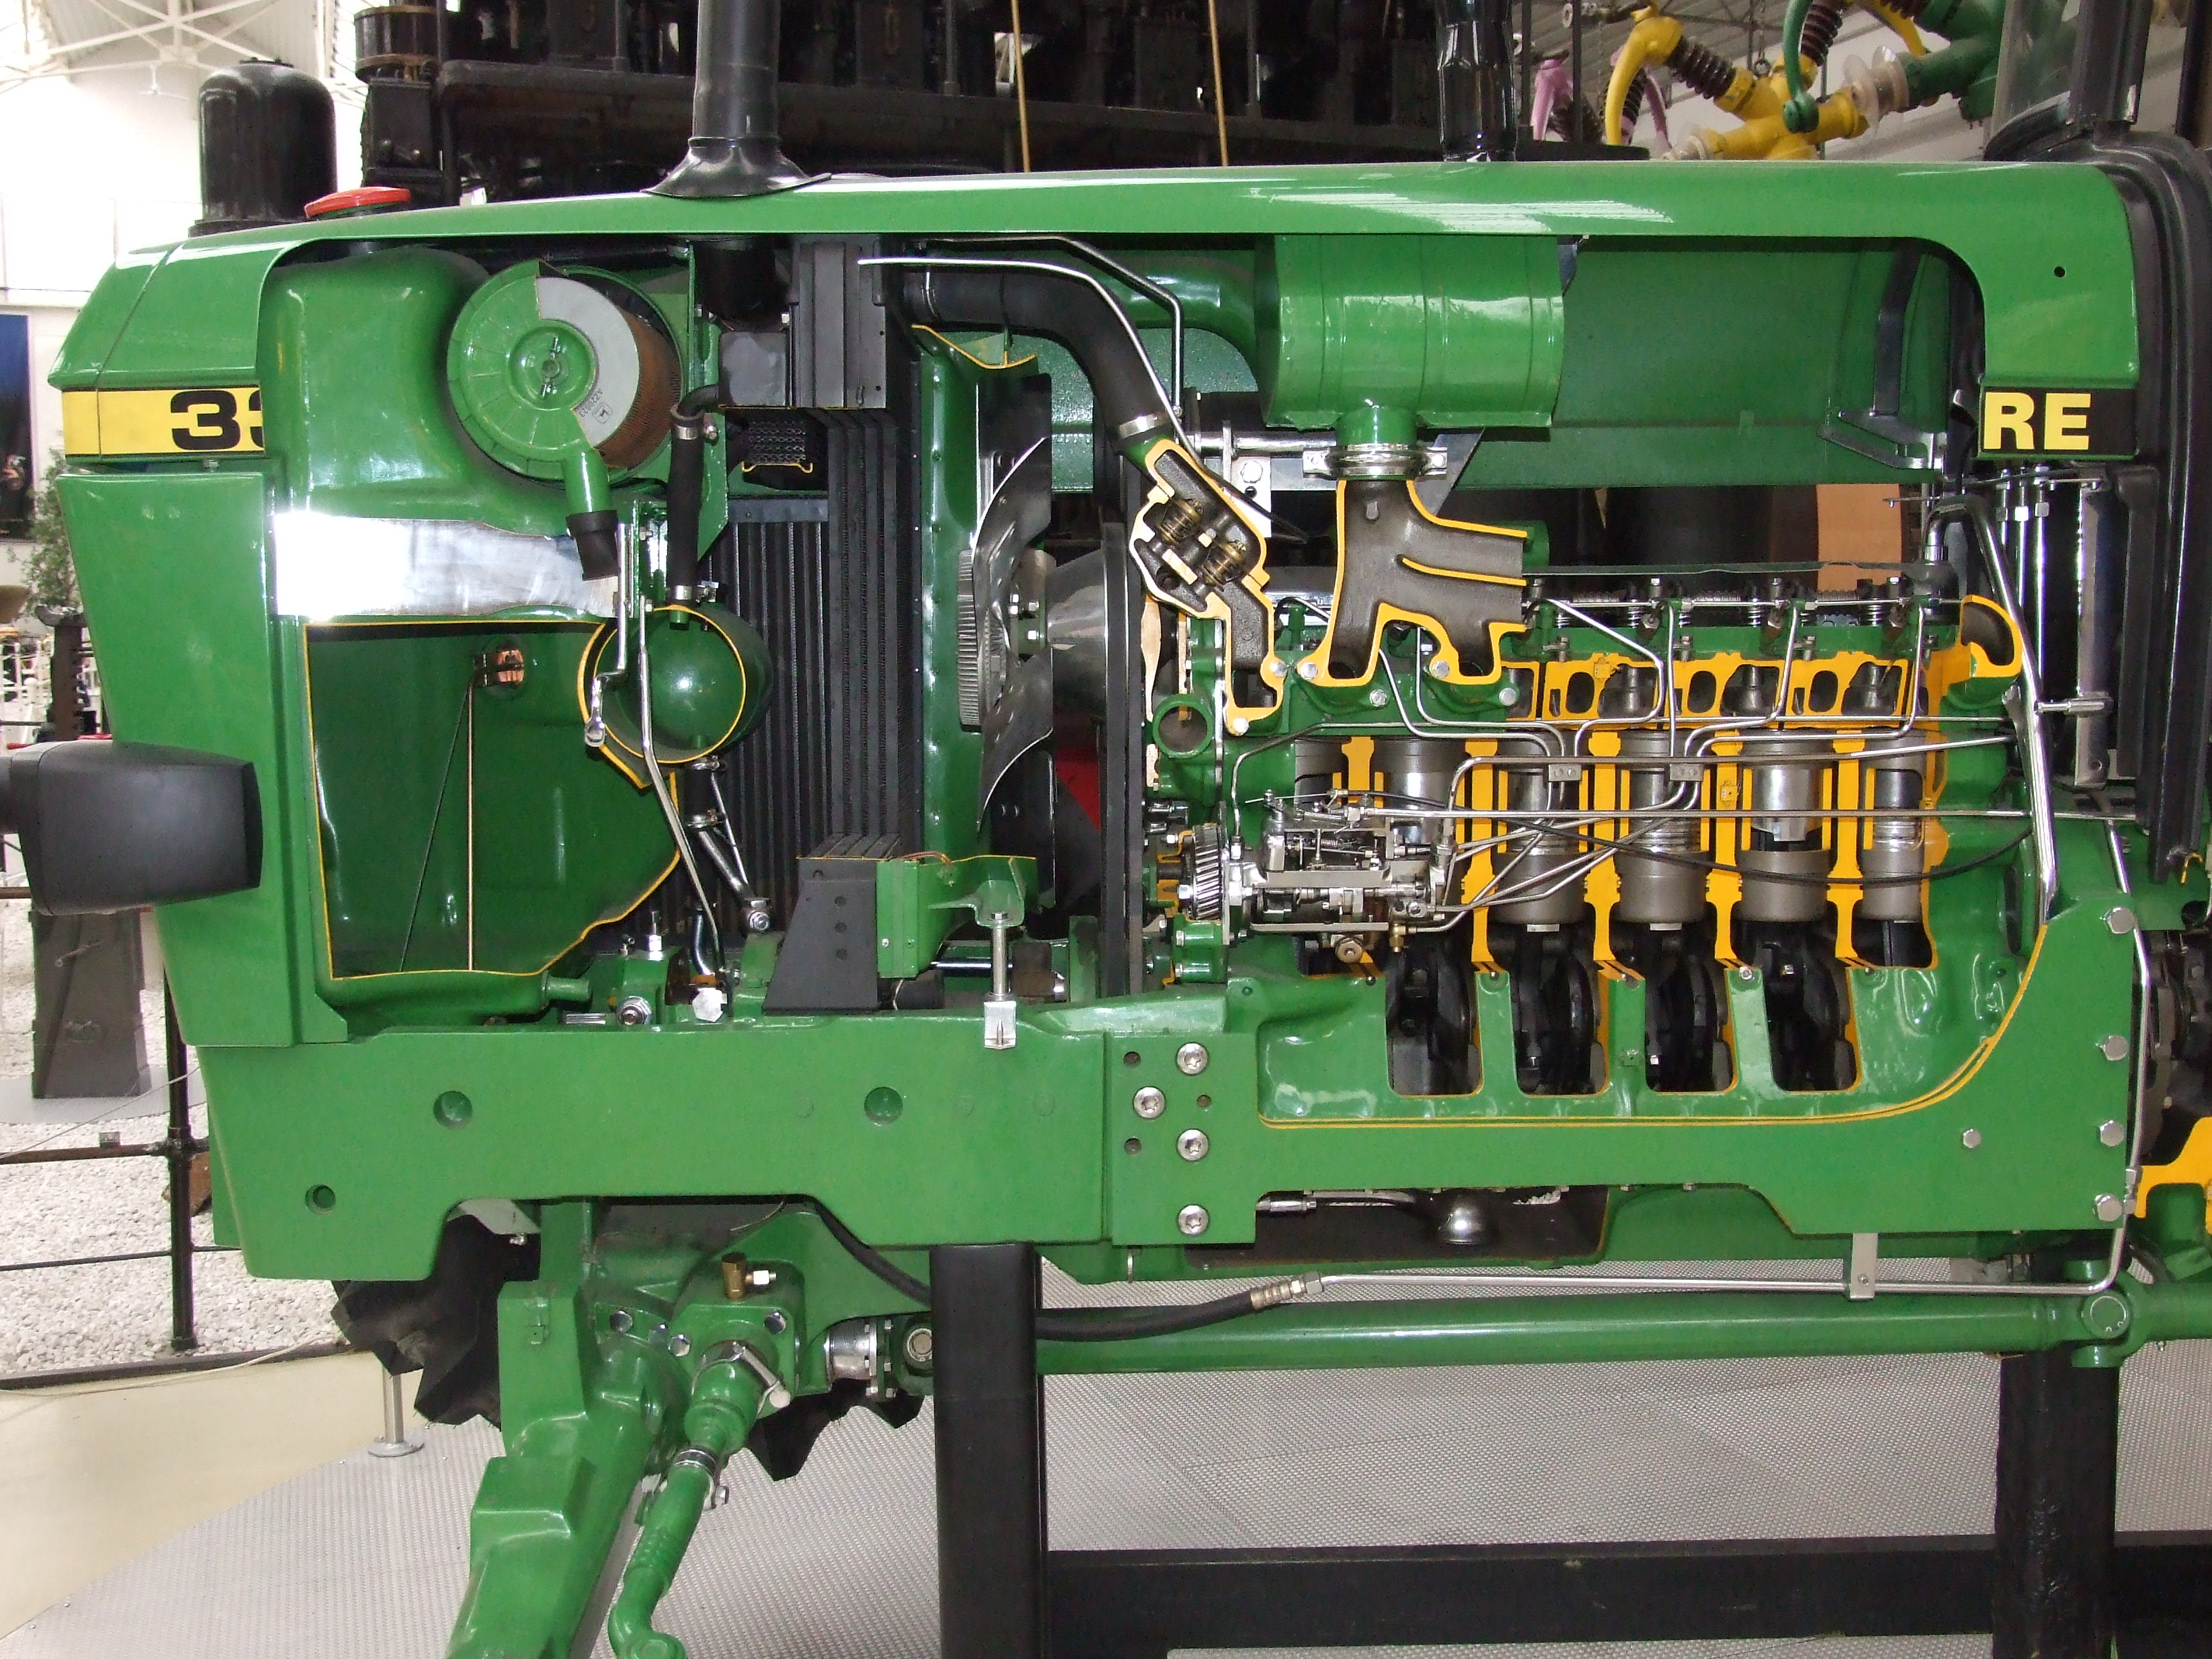 file john deere 3350 tractor cut engine jpg